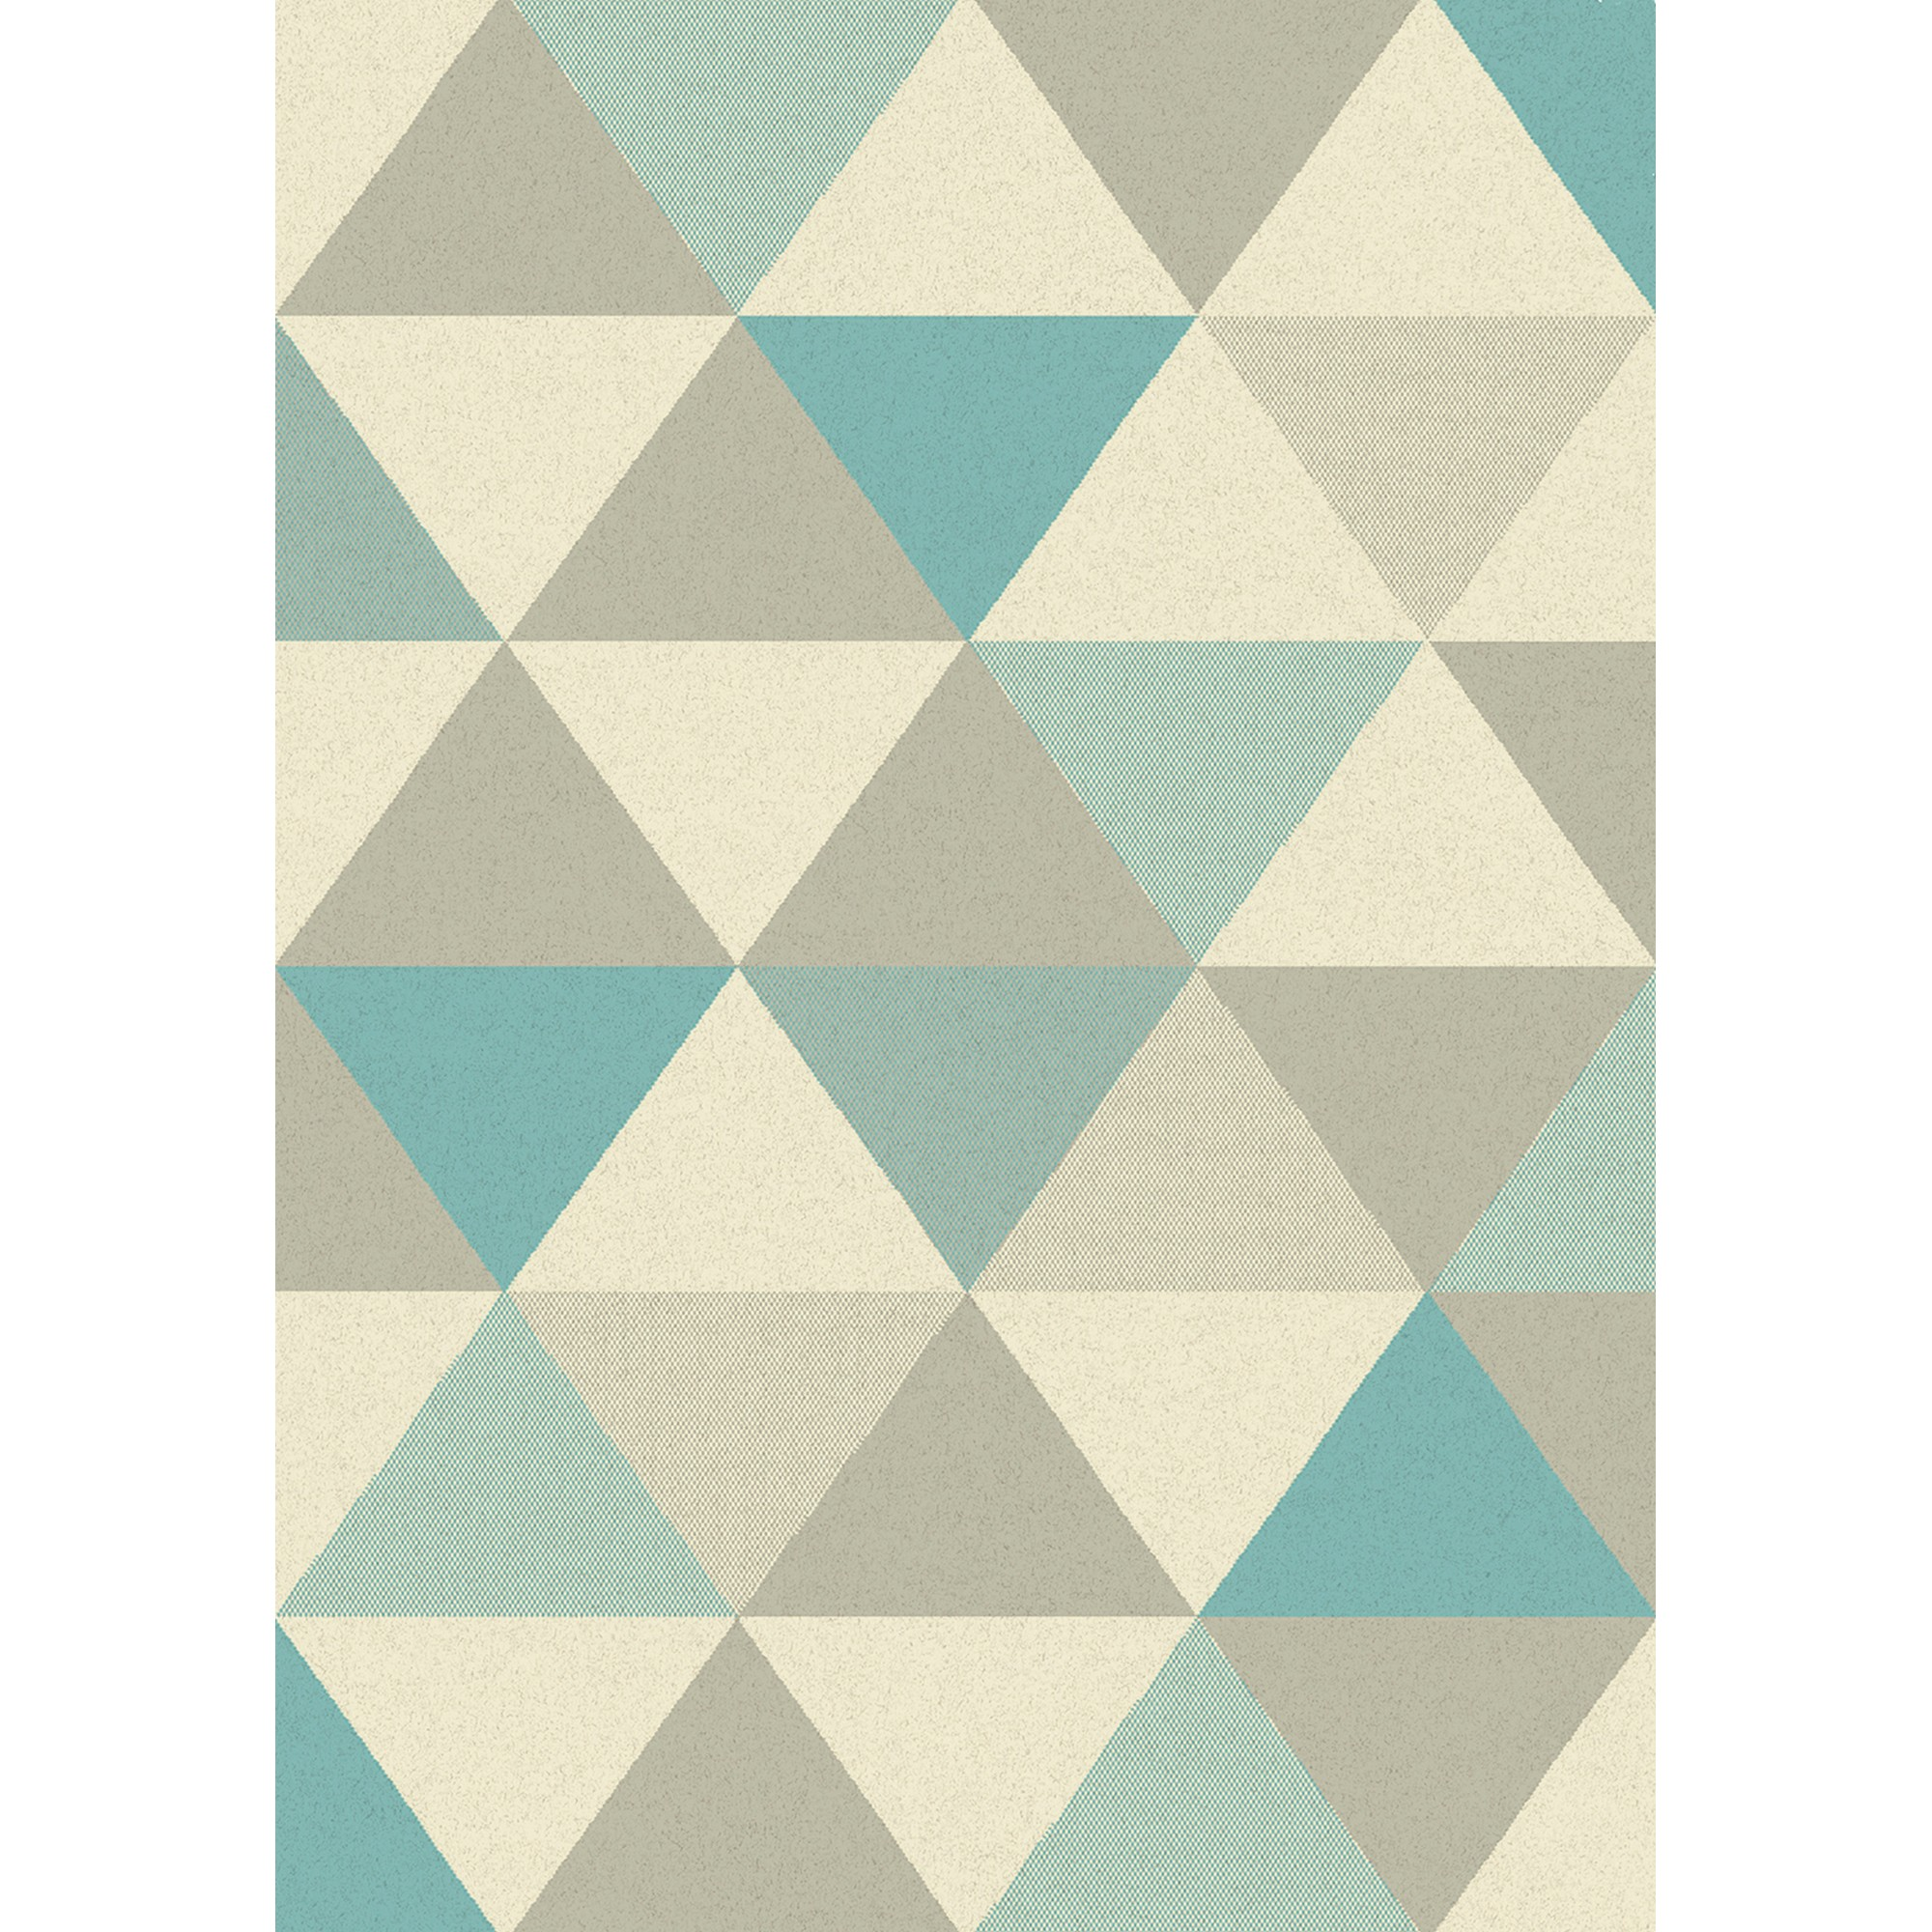 Focus Triangles Rugs FC02 in Blue